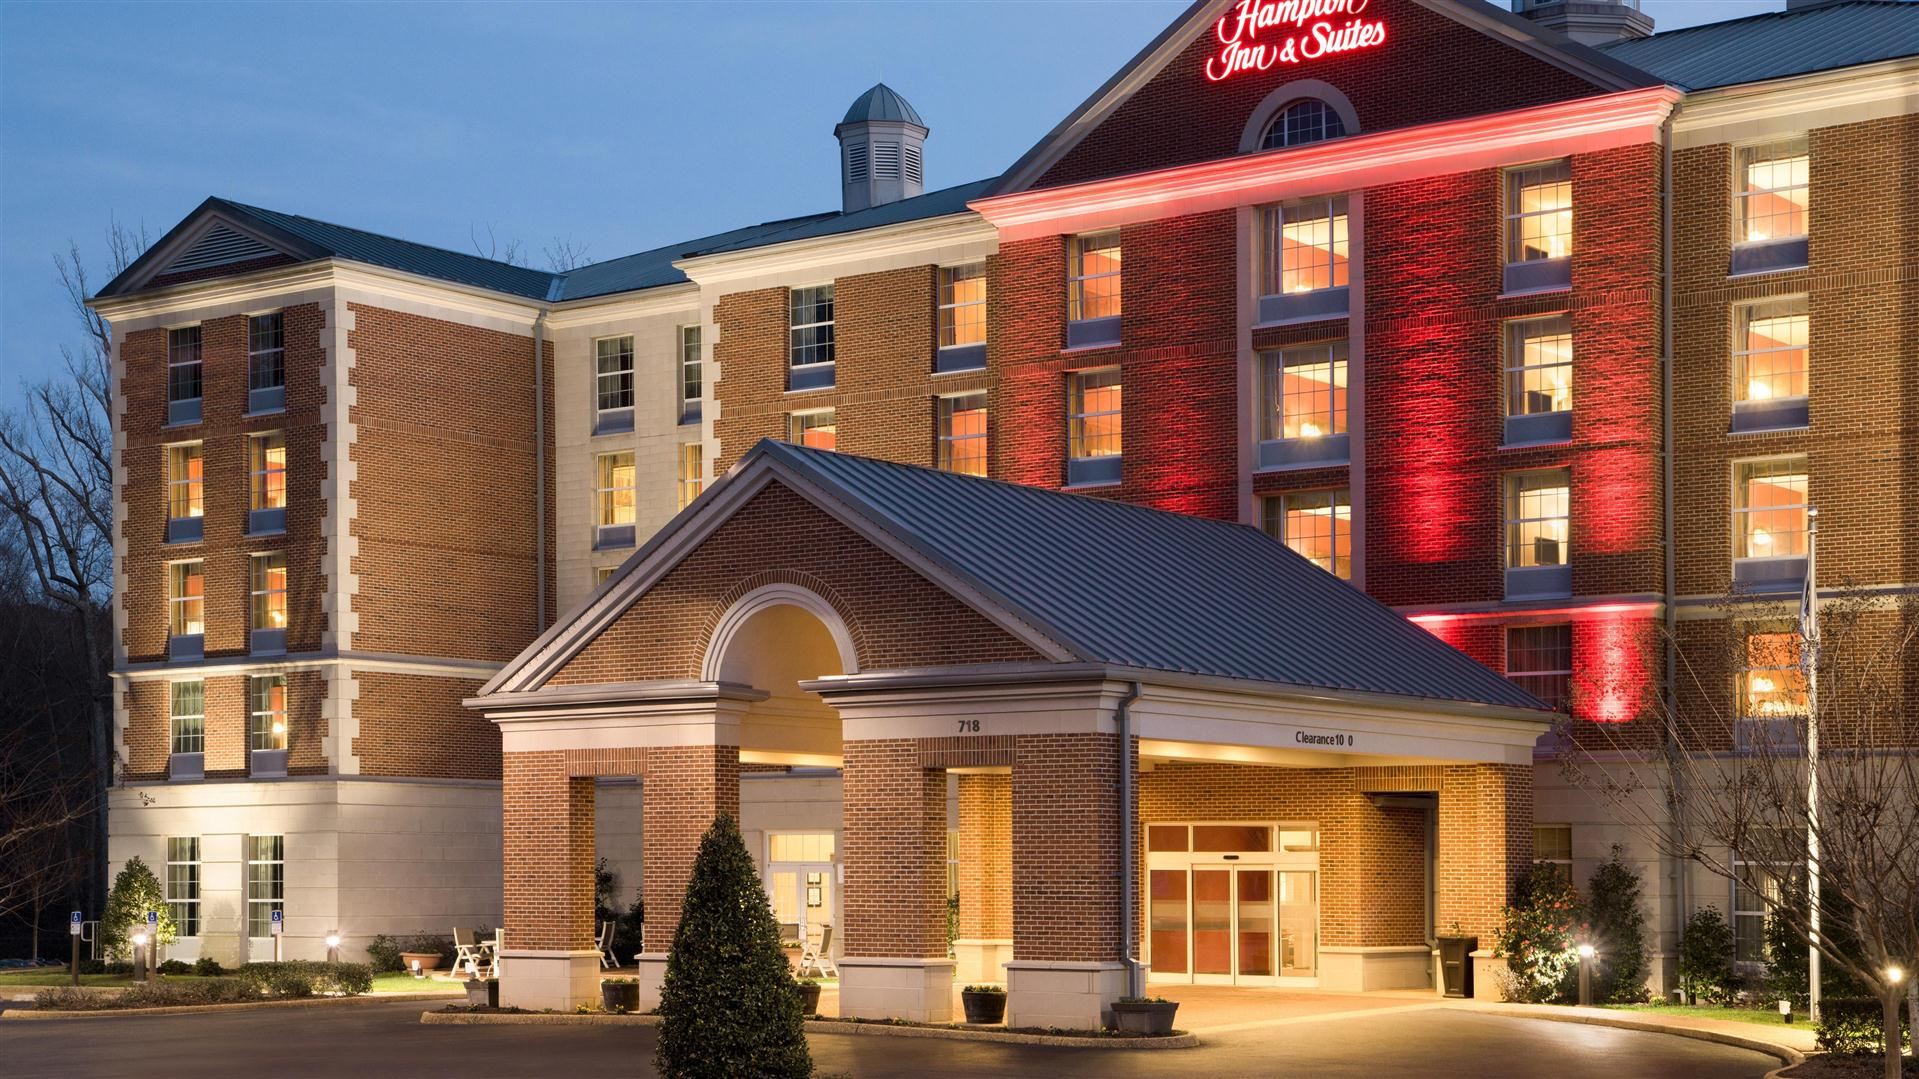 Meetings and Events at Hampton Inn & Suites Williamsburg-Central ...